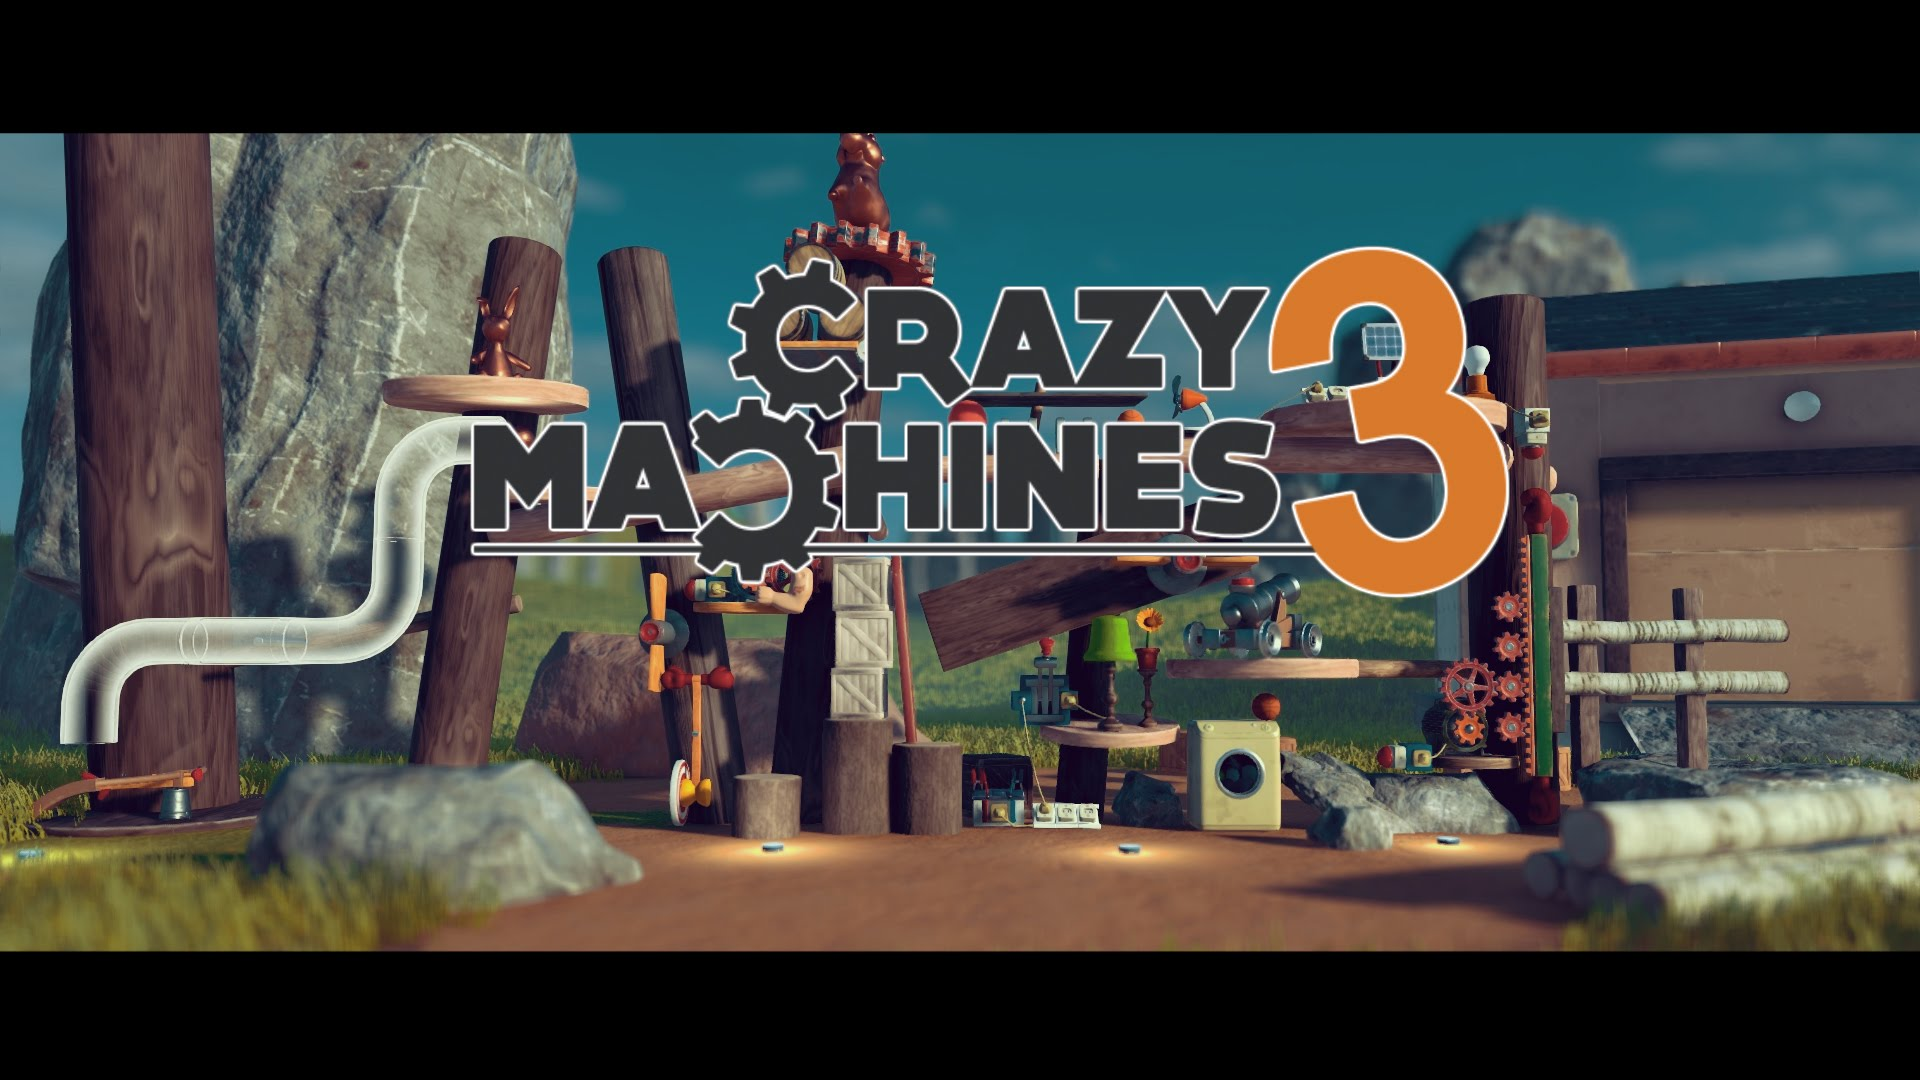 Crazy Machines 3 - Release Date Teaser